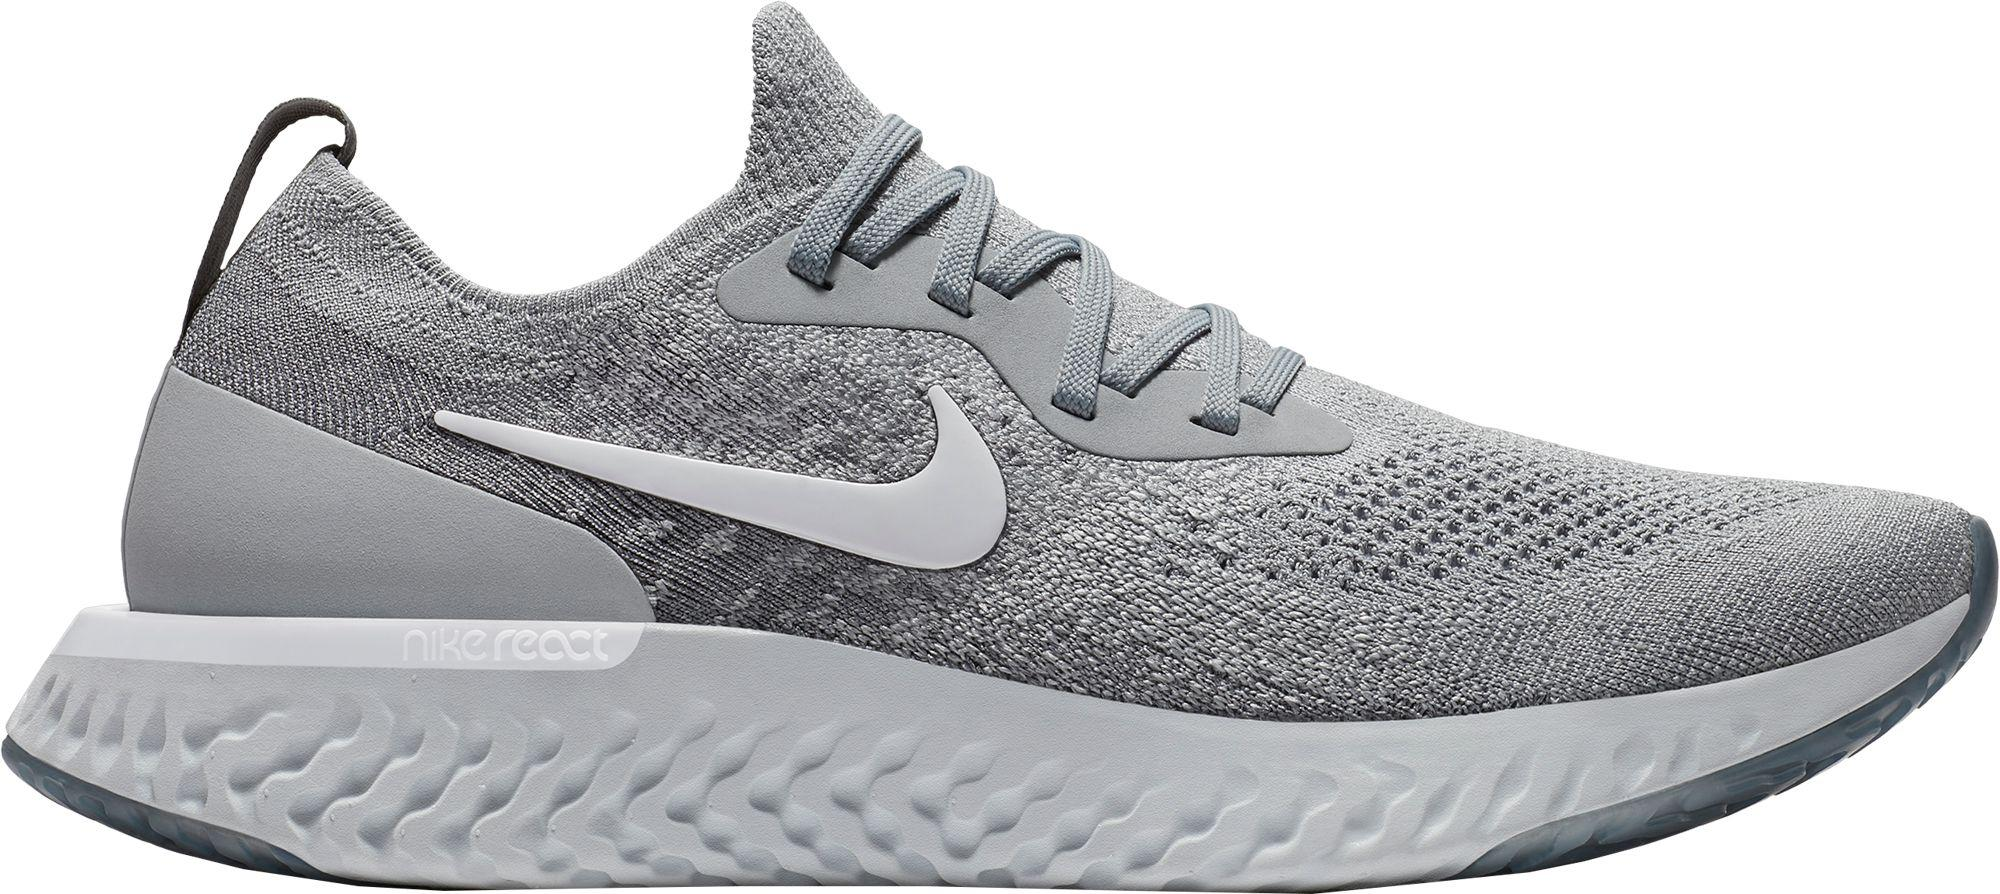 49f55e4f5ba5 ... best price nike gray epic react flyknit running shoes for men lyst  cde6d b2e93